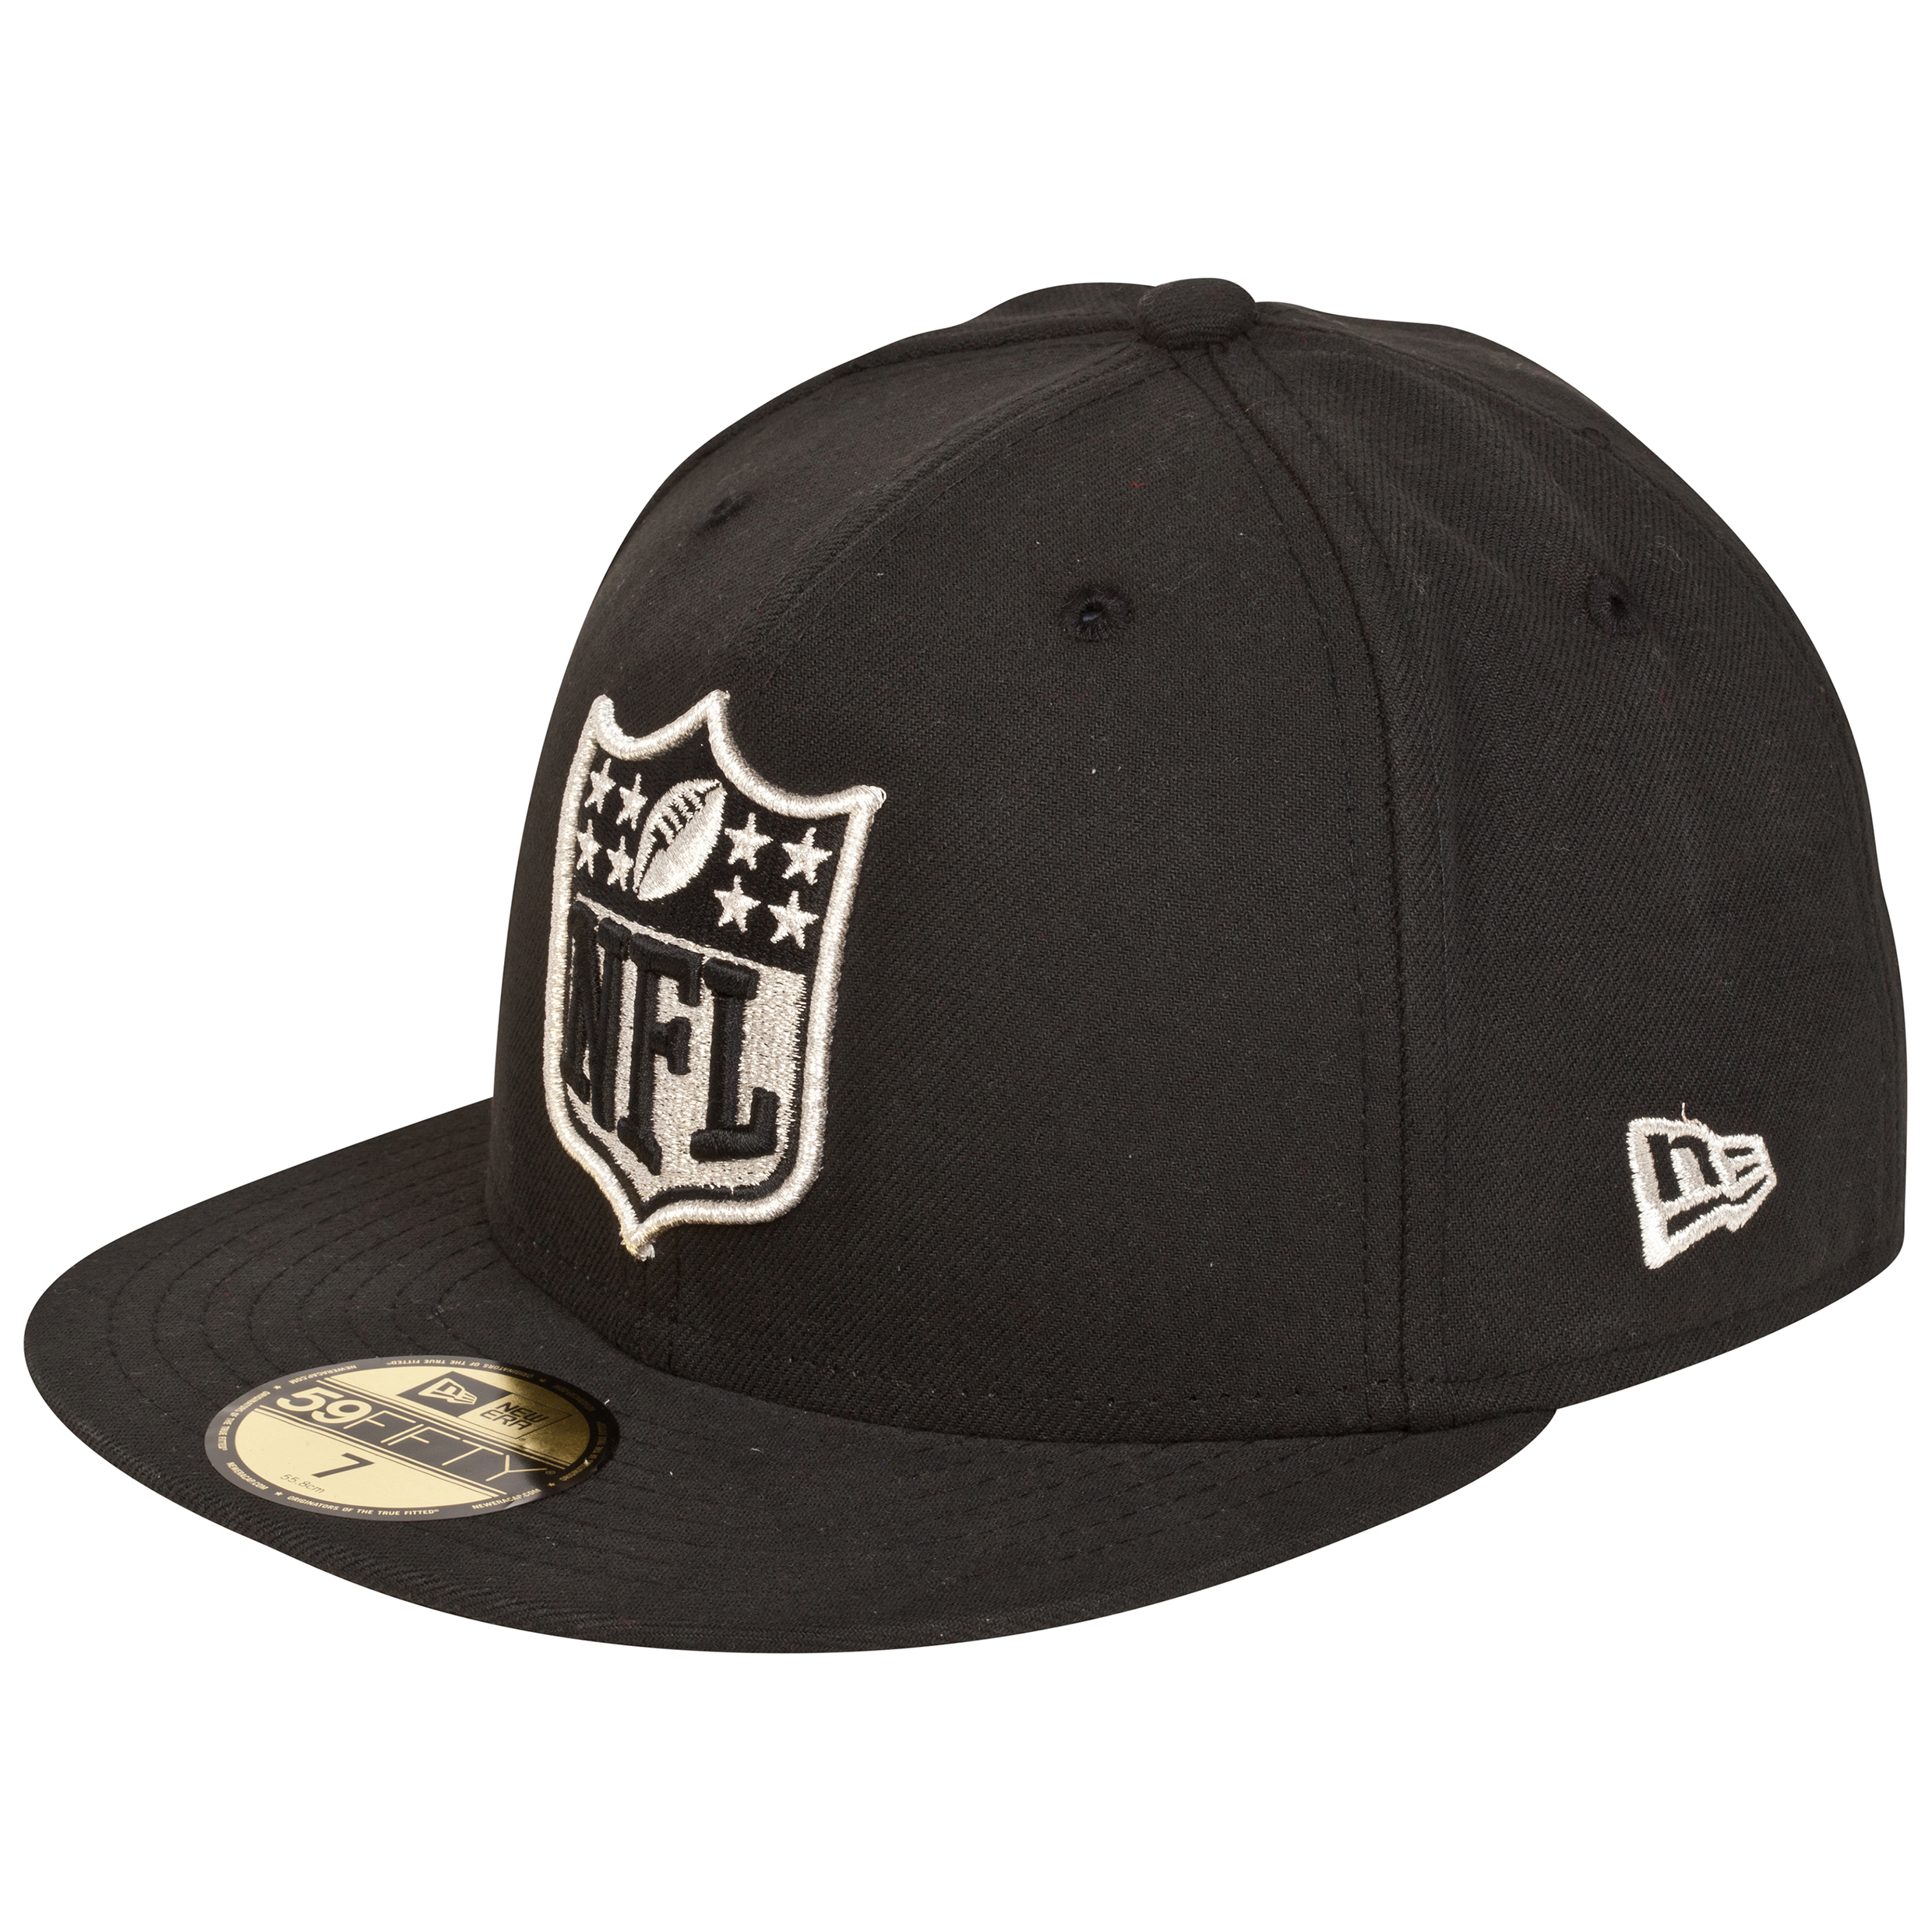 NFL Shield 59FIFTY Fitted Cap